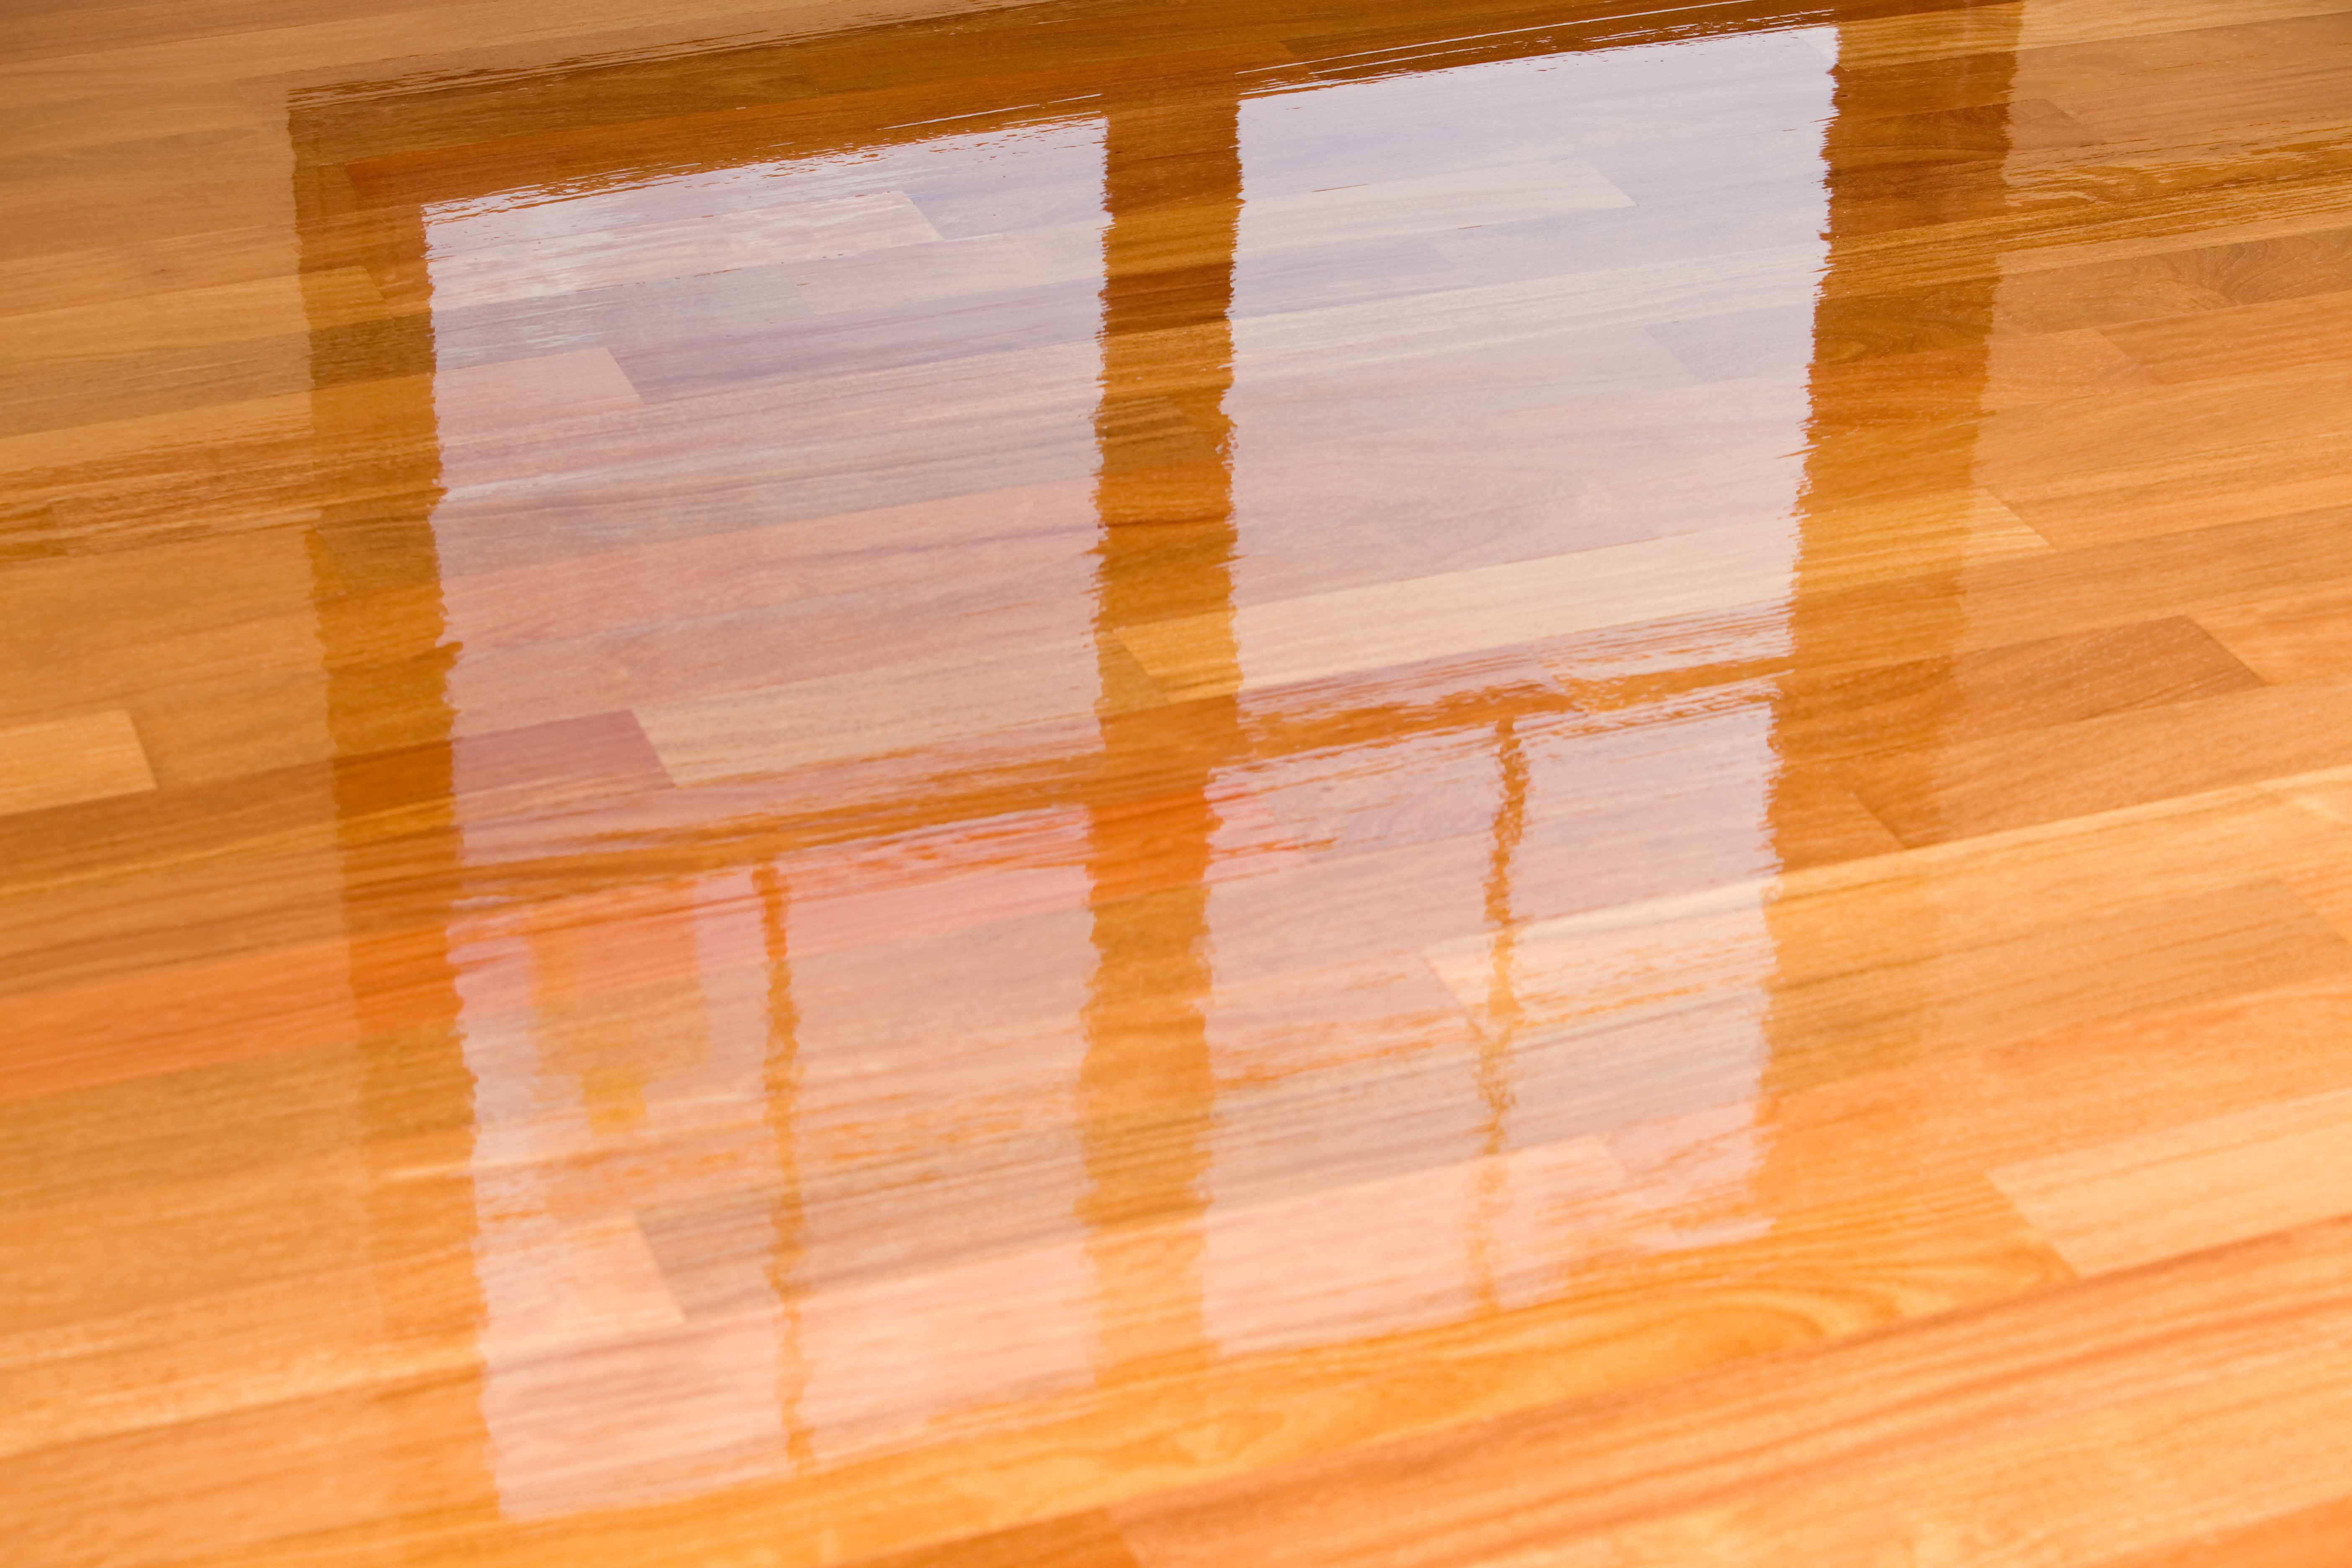 floating hardwood floor underlayment of guide to laminate flooring water and damage repair intended for wet polyurethane on new hardwood floor with window reflection 183846705 582e34da3df78c6f6a403968